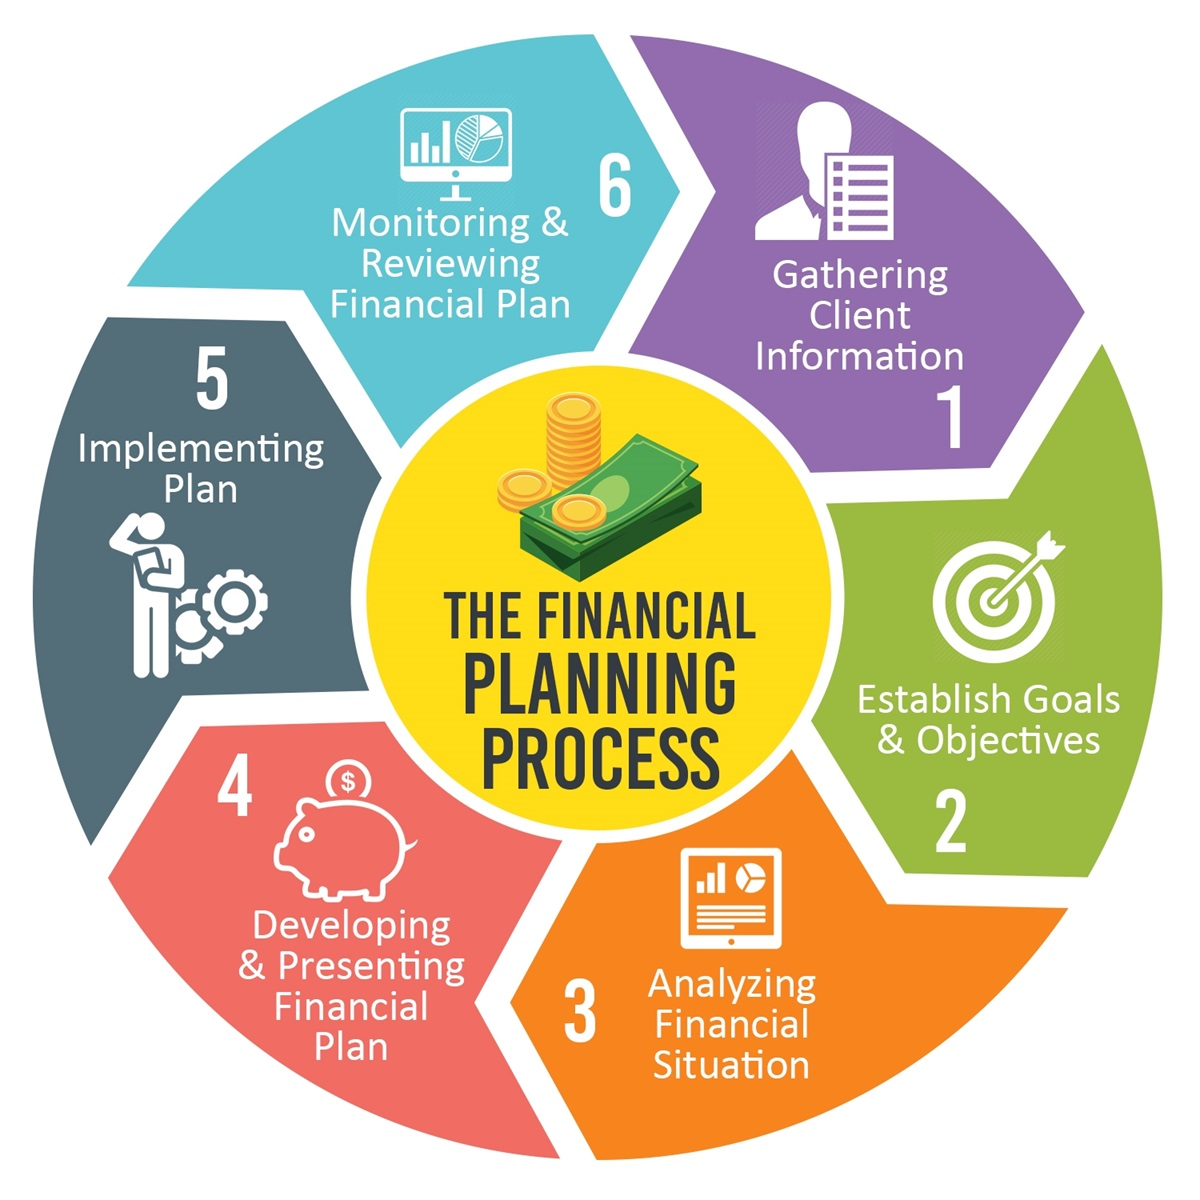 Financial Planning Process 6steps.jpg